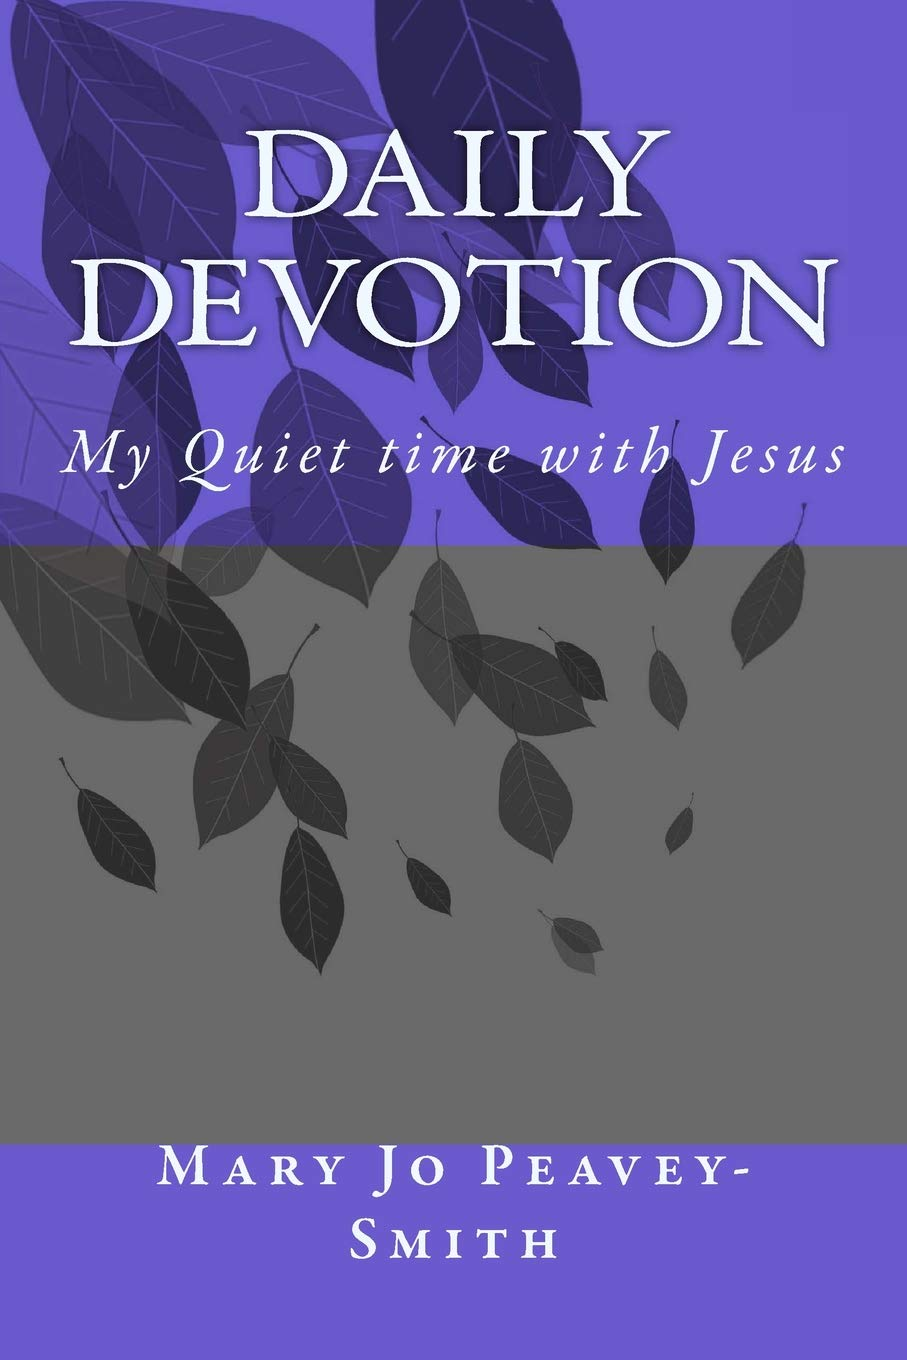 My Daily Devotional Volume V